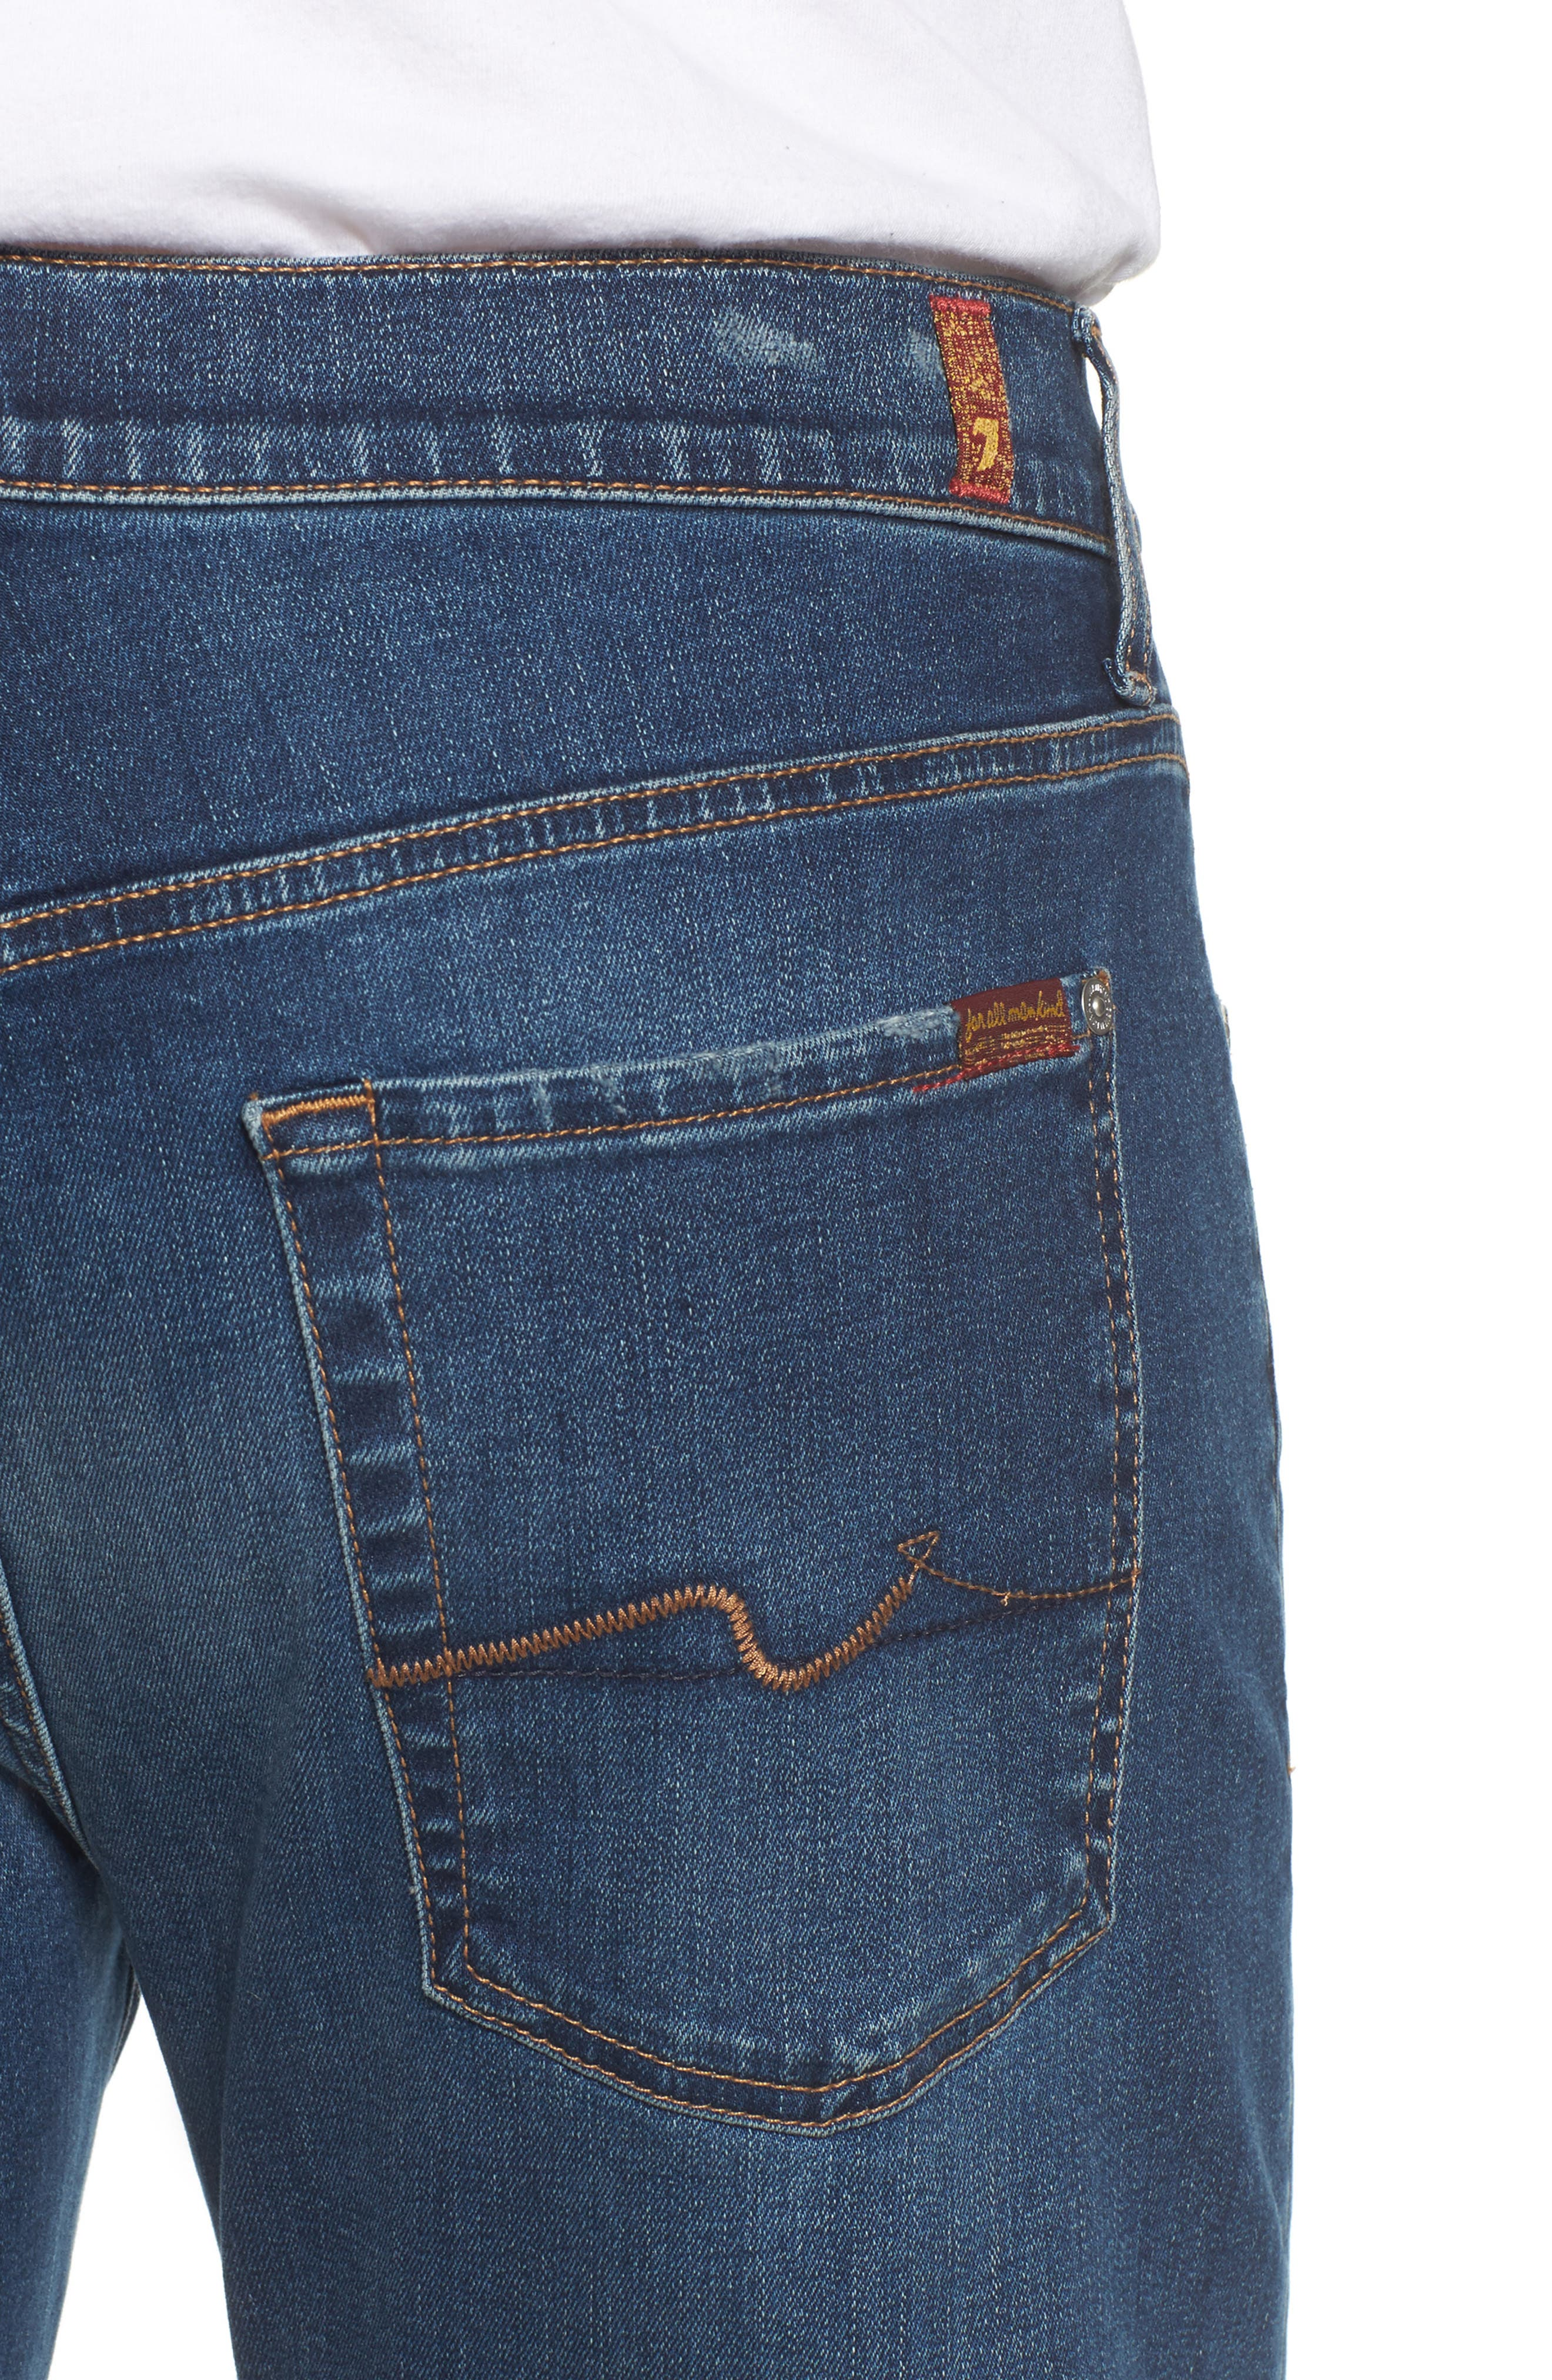 The Straight - Luxe Performance Slim Straight Leg Jeans,                             Alternate thumbnail 4, color,                             LUXE PERFORMANCE UNION